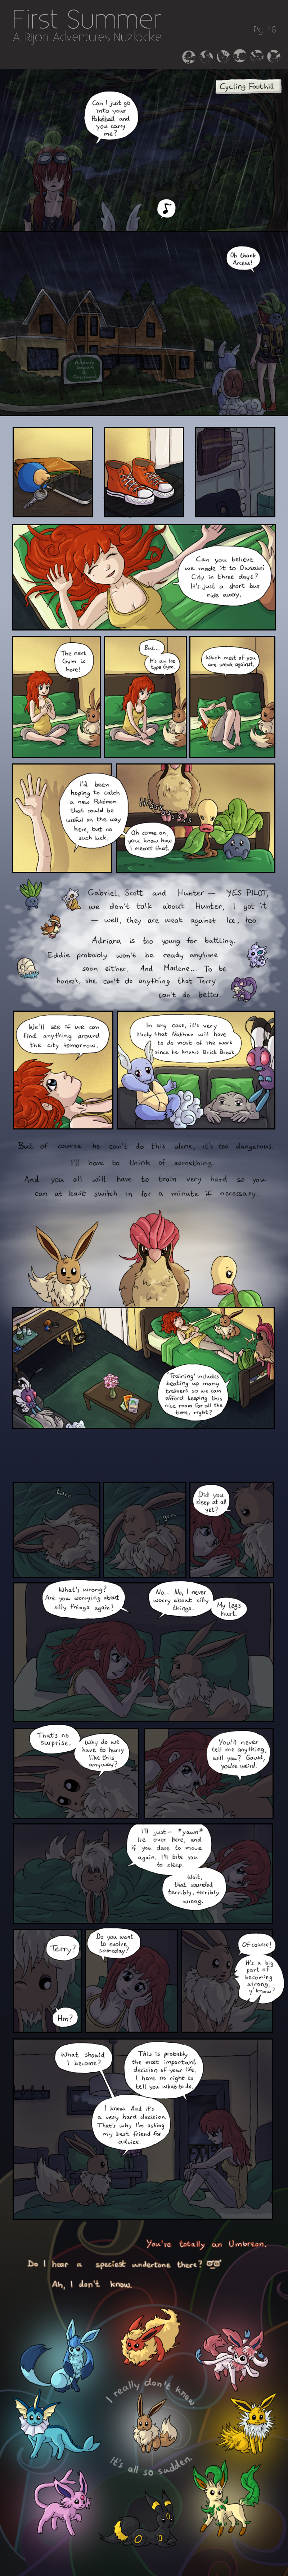 First Summer - A Rijon Adventures Nuzlocke [Pg.18]